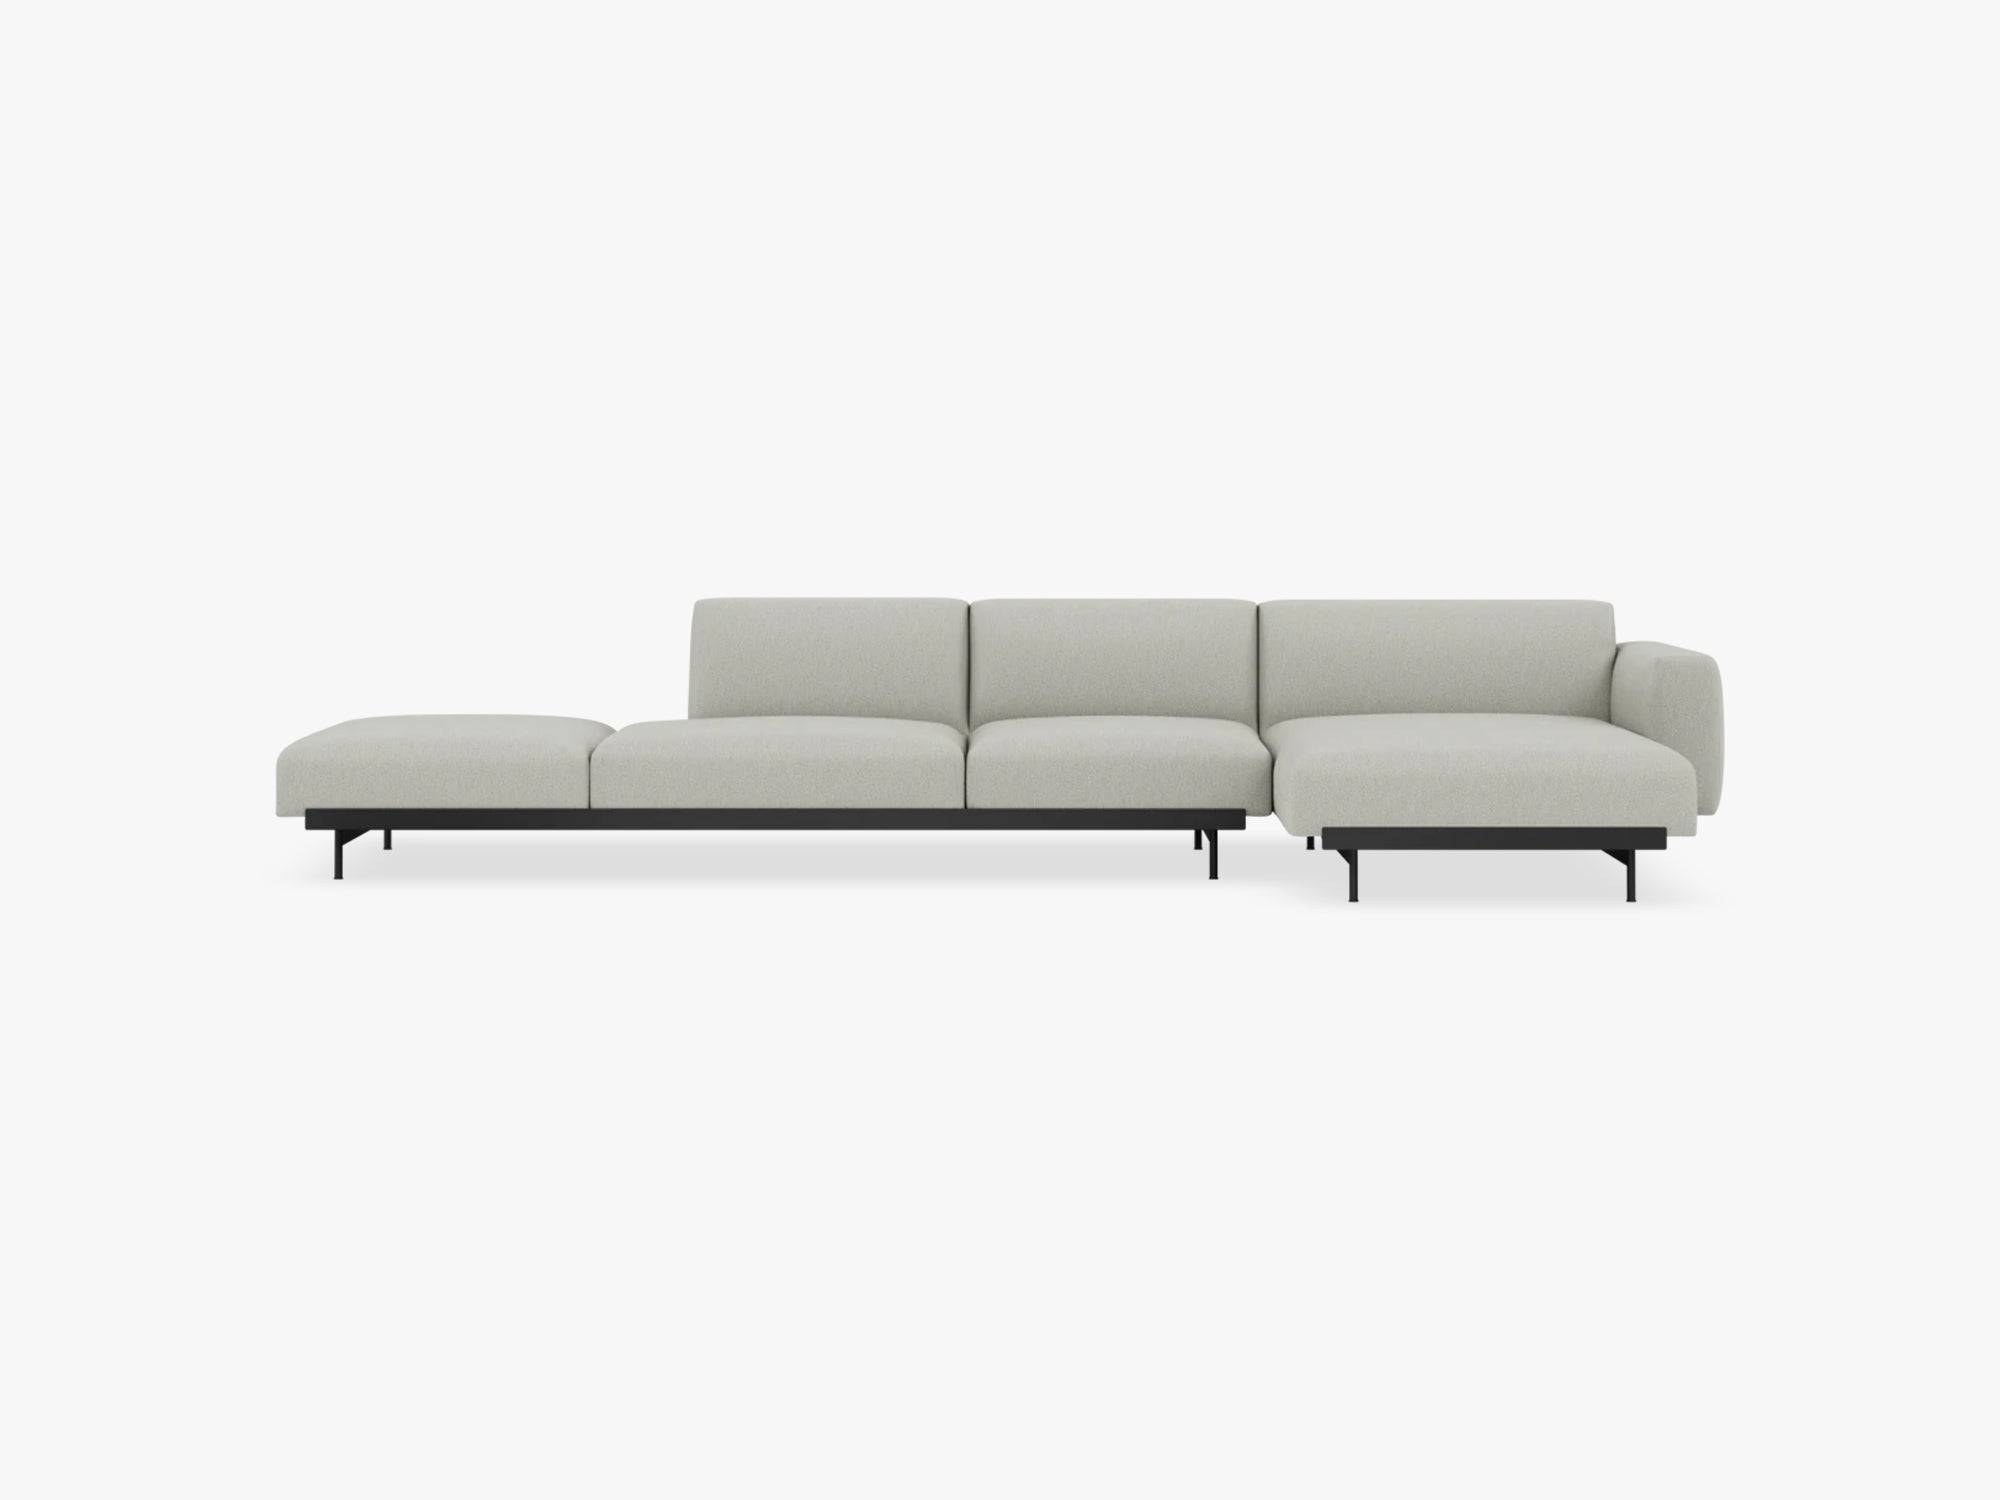 In Situ Modular Sofa, 4 Seater, Configuration 4, Clay fra Muuto